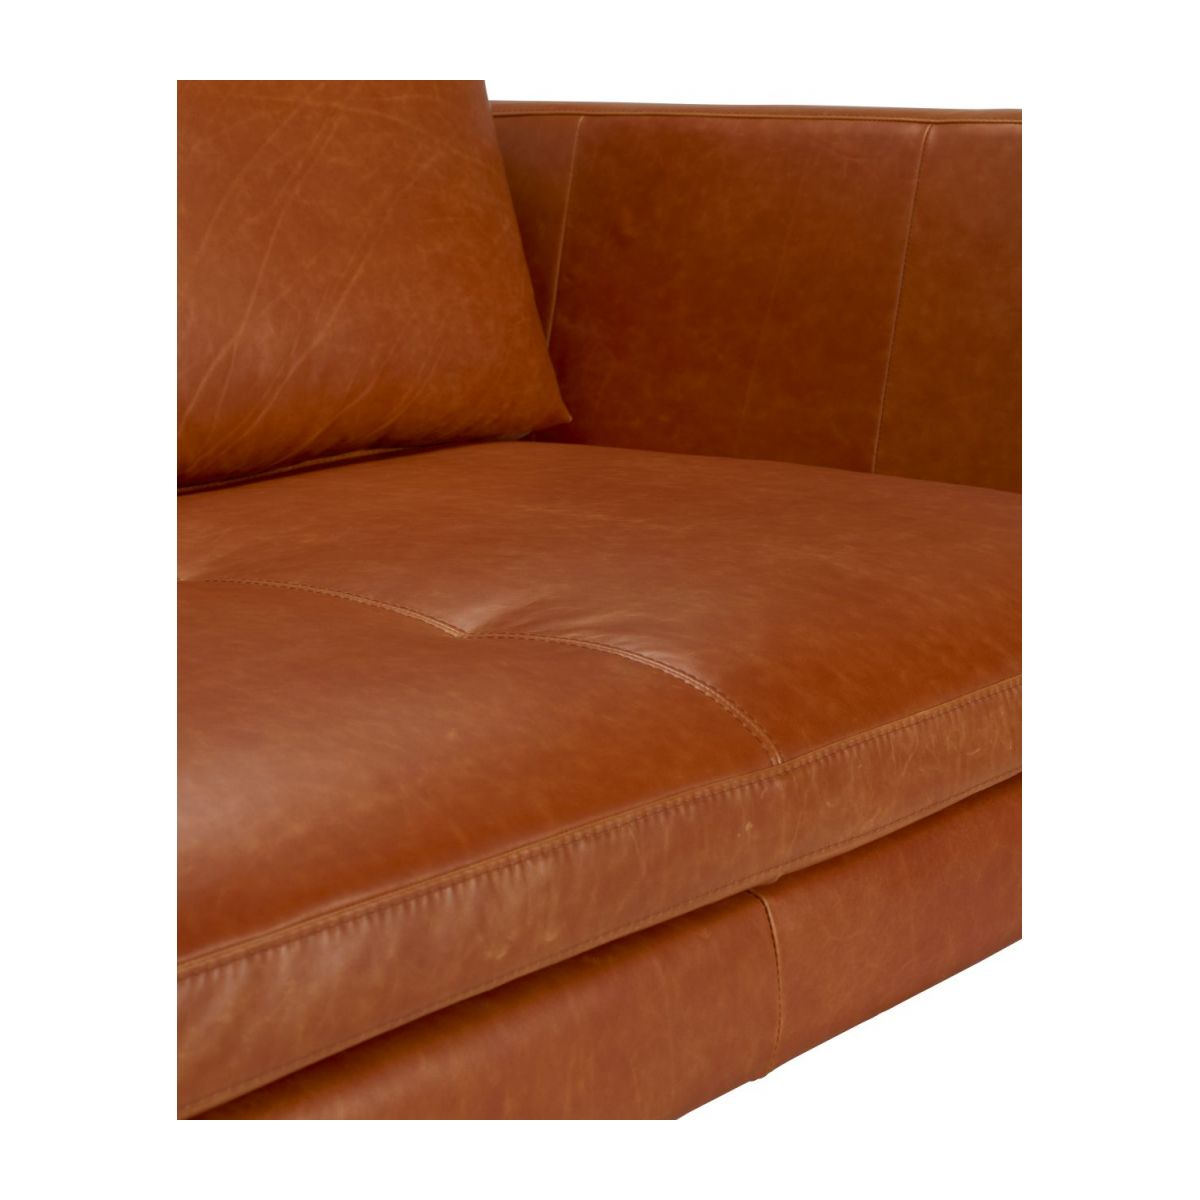 2 seater sofa in Vintage aniline leather, old chestnut n°10